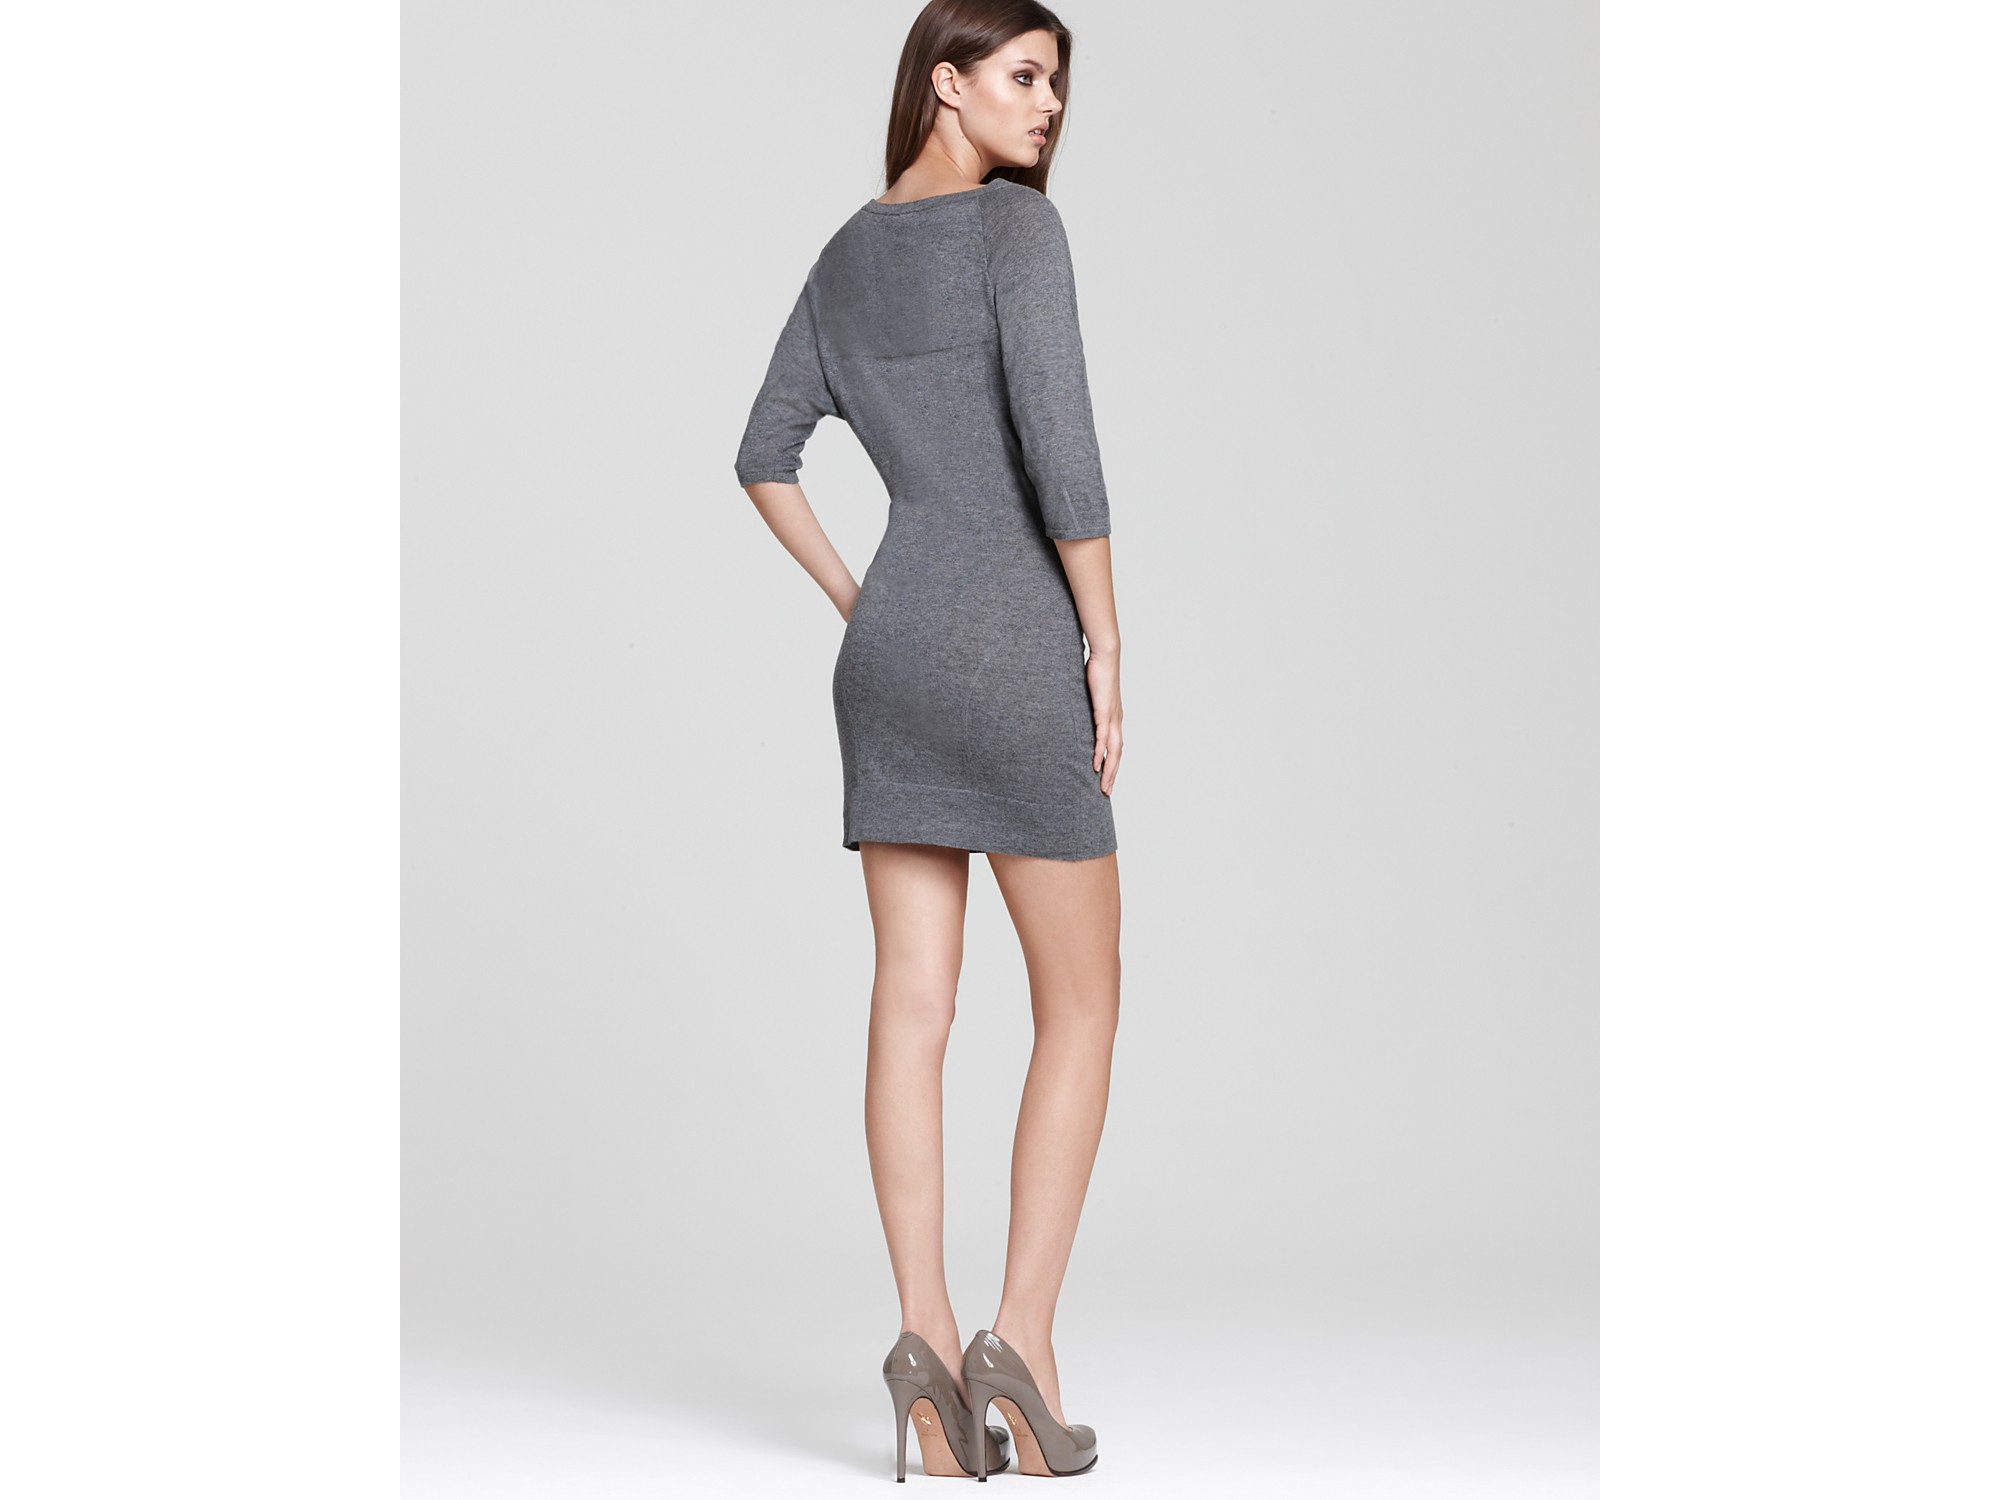 Nicole miller Sequin Sweater Dress in Gray  Lyst